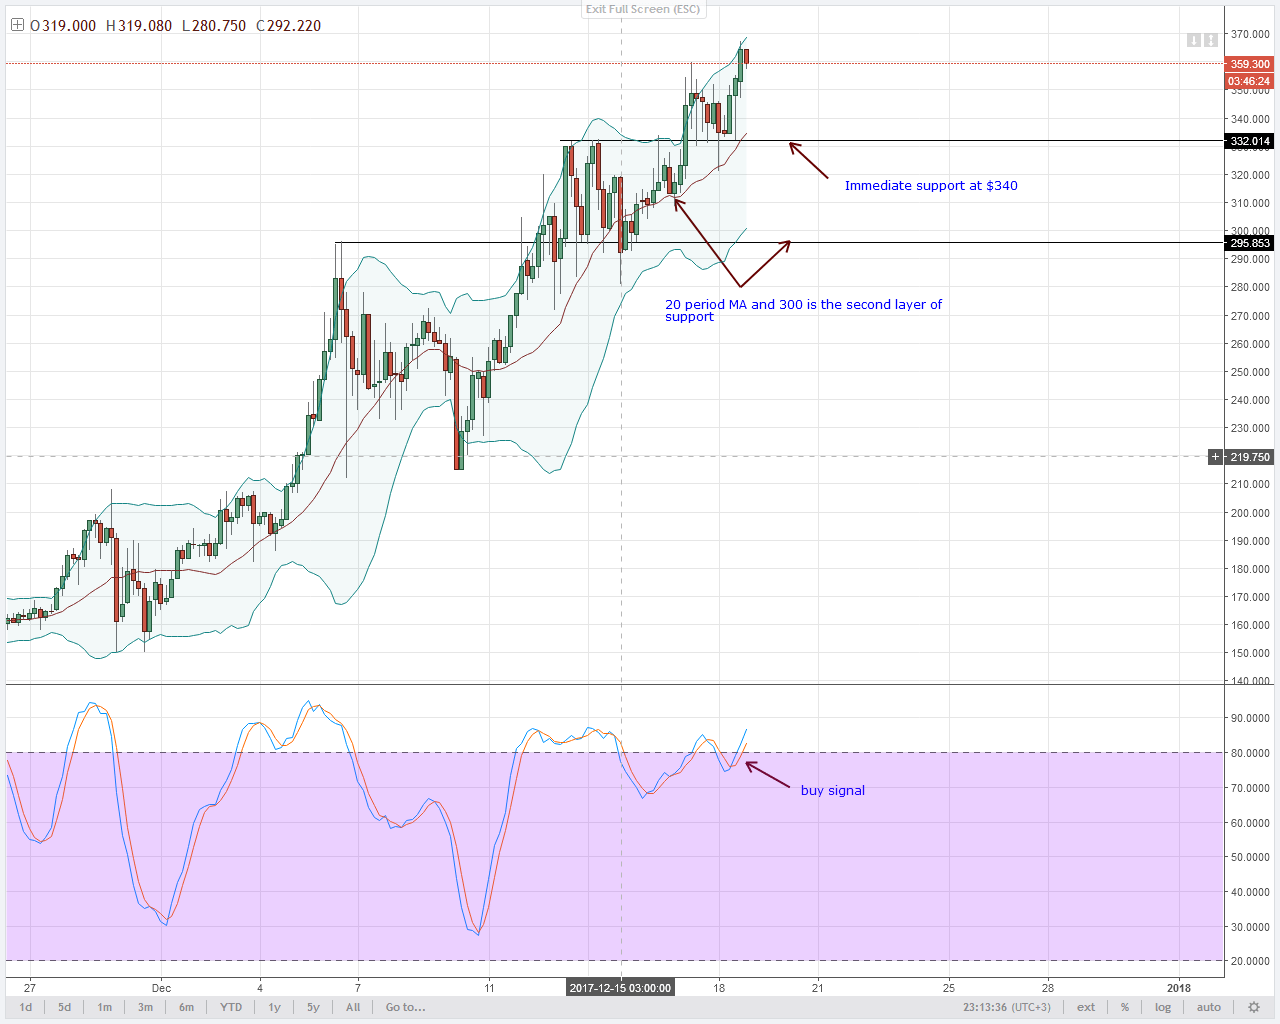 MONERO 4HR chart technical analysis